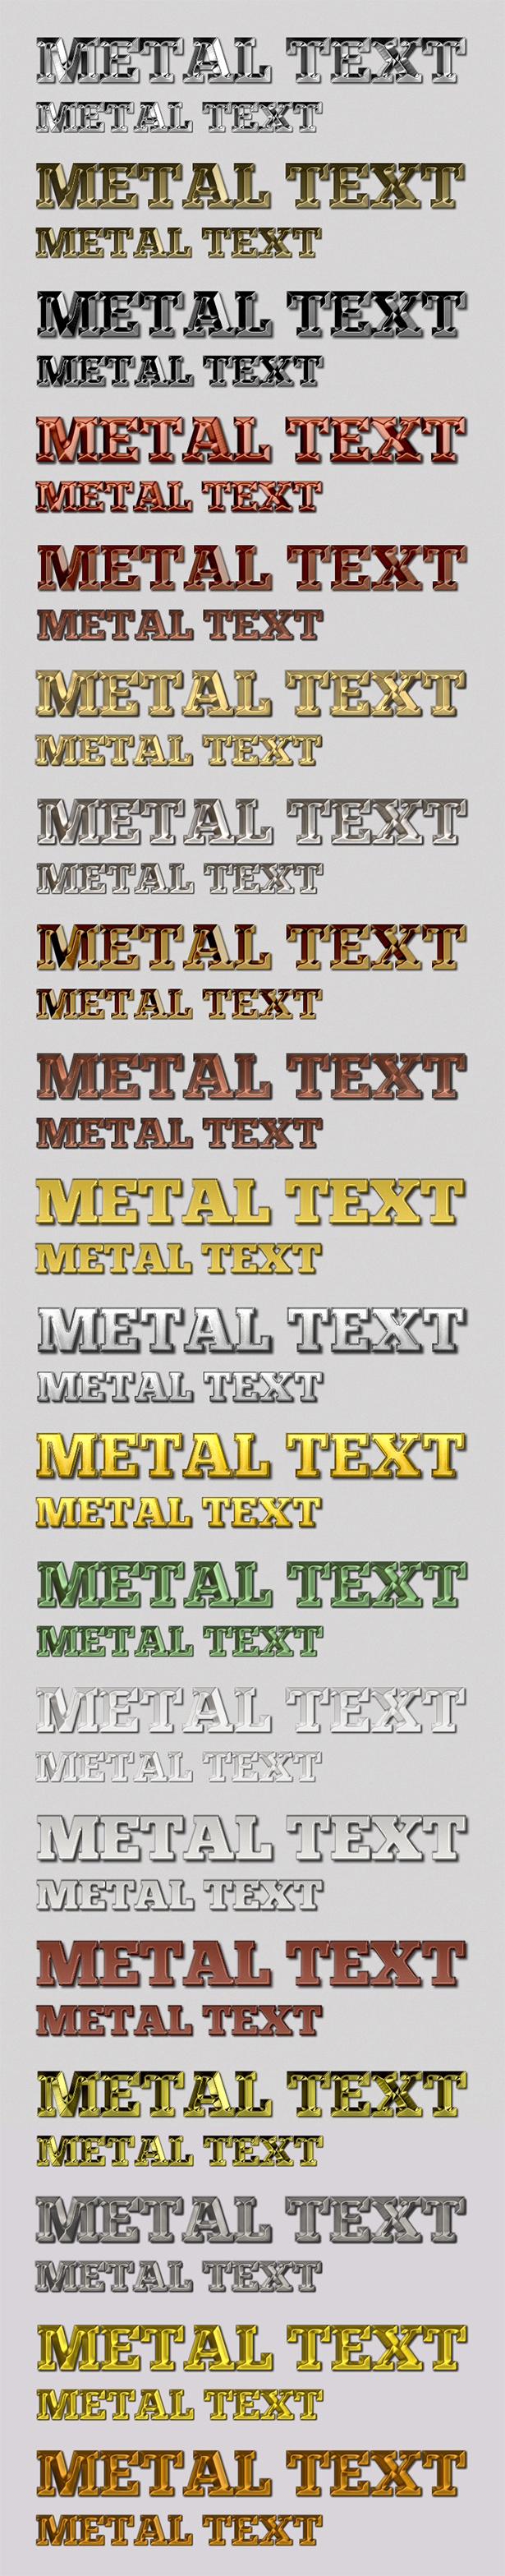 Metal Text Styles